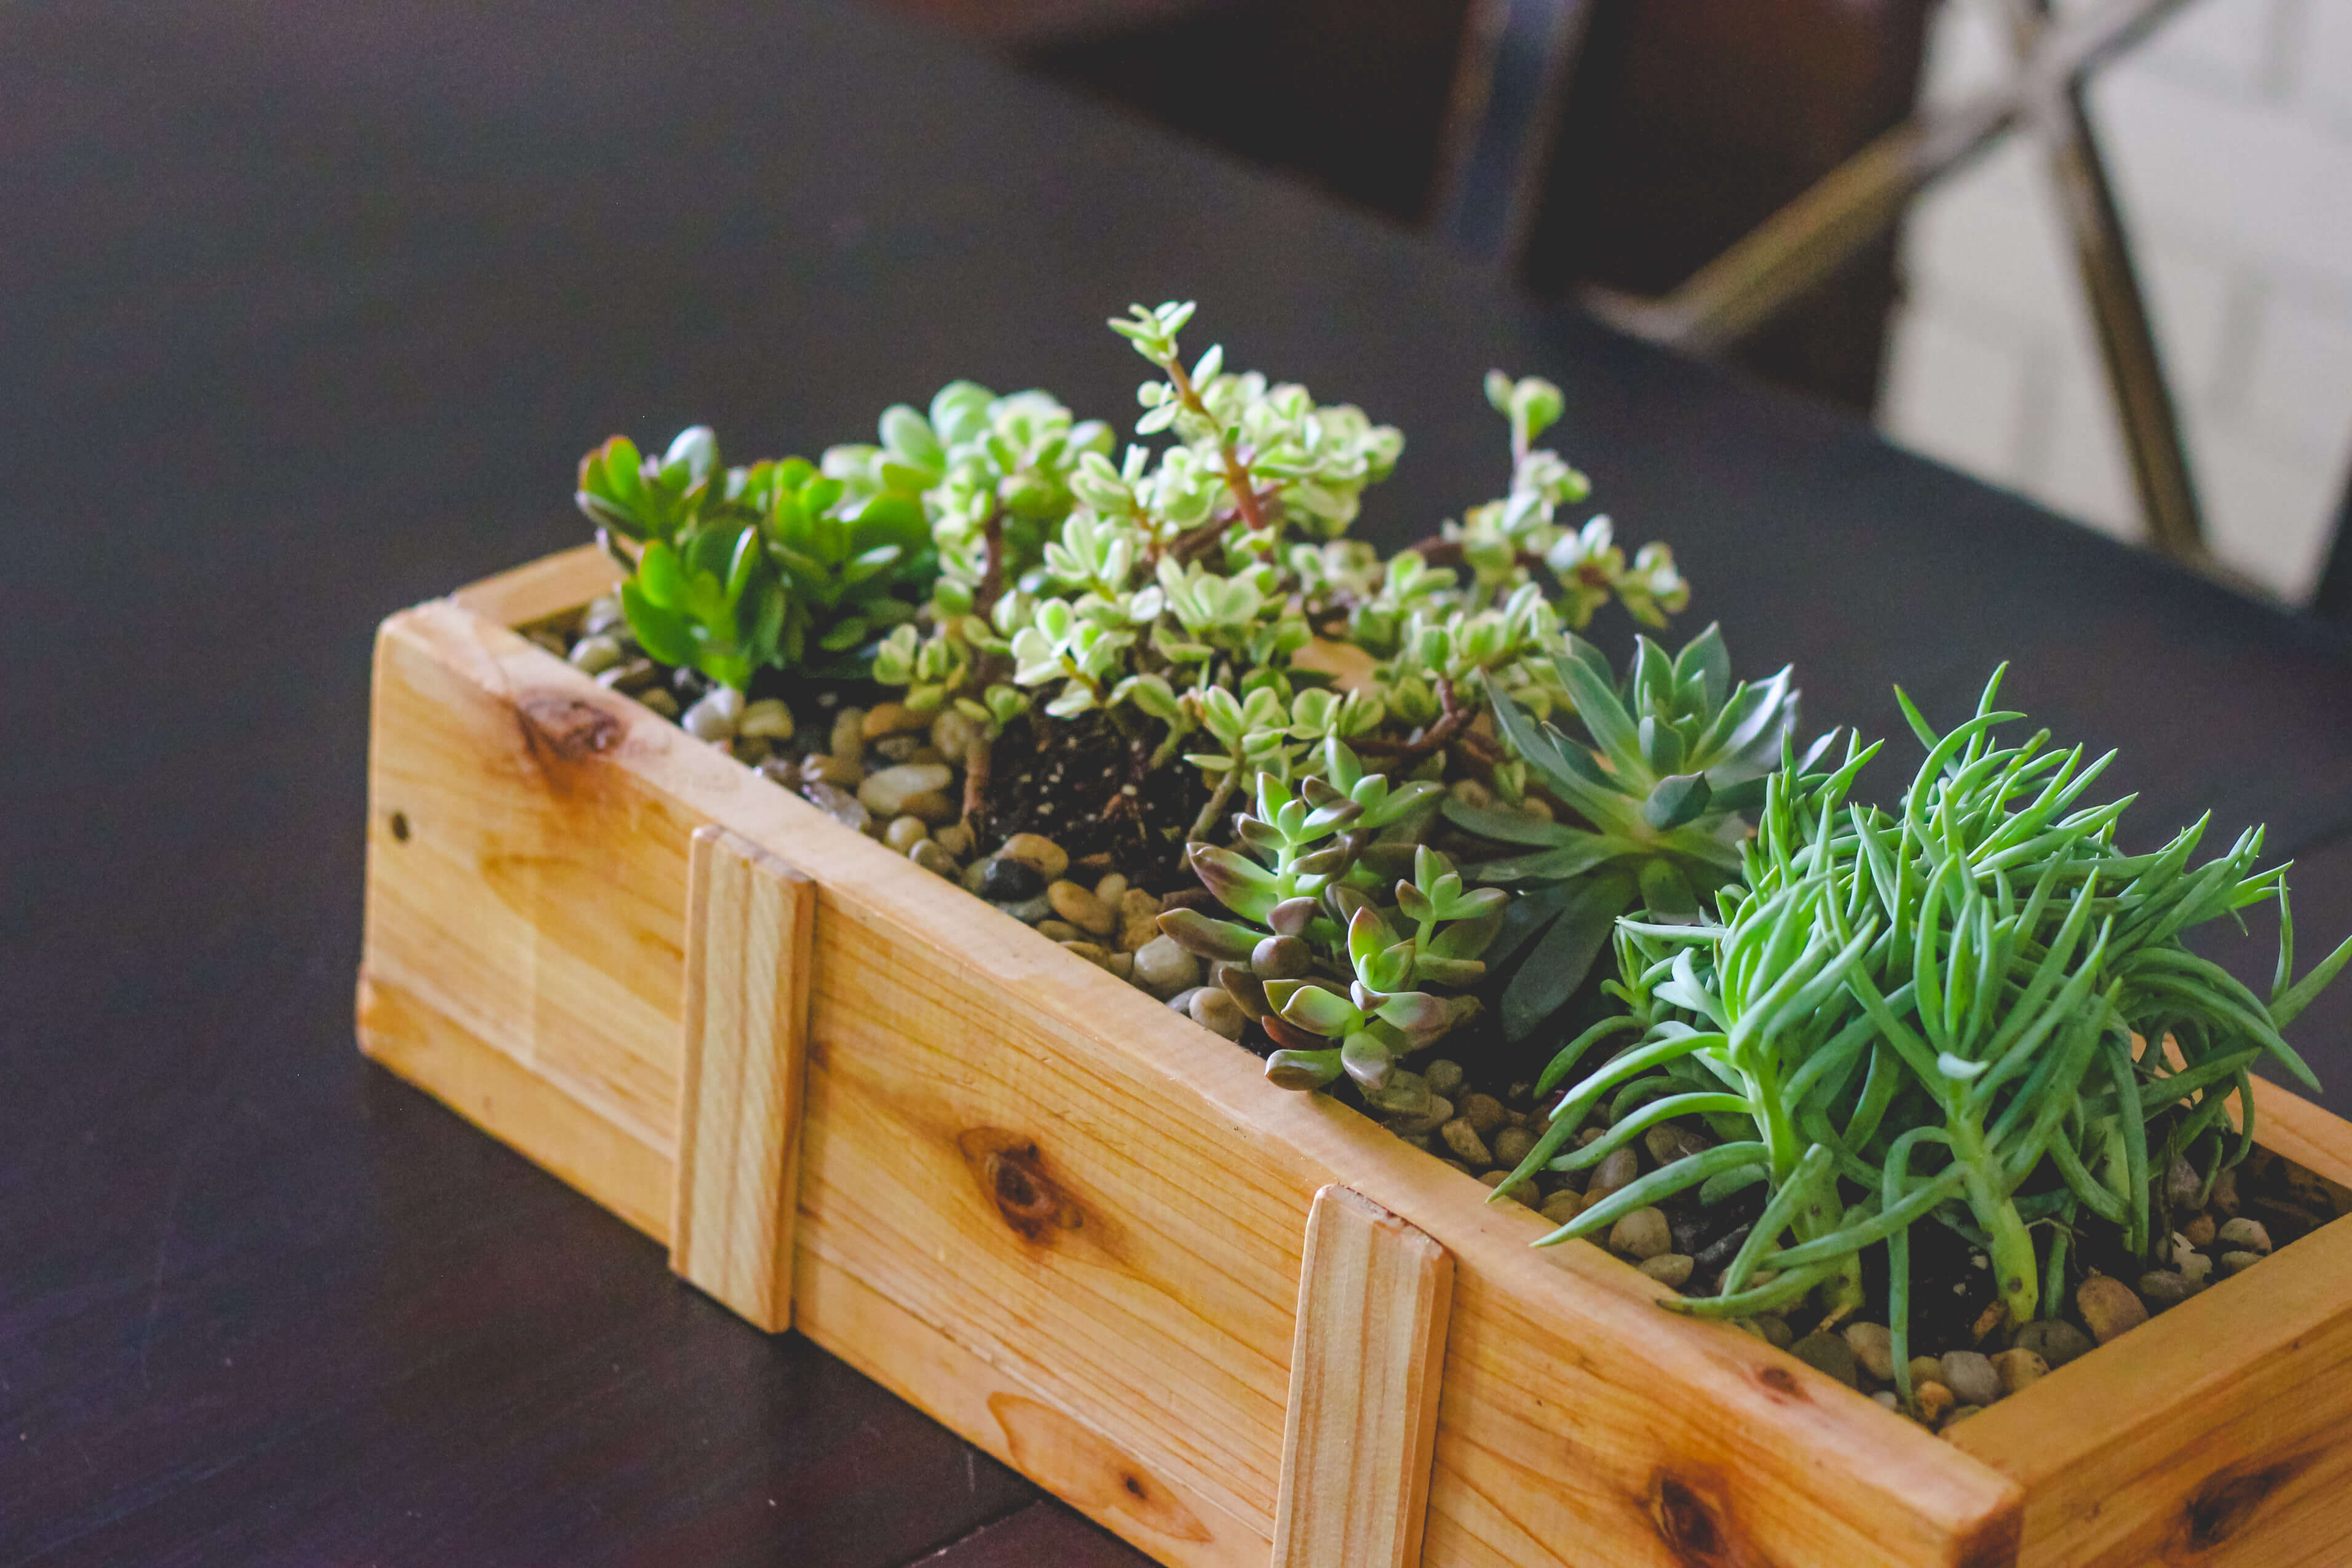 Wood pine succulent planter on table.